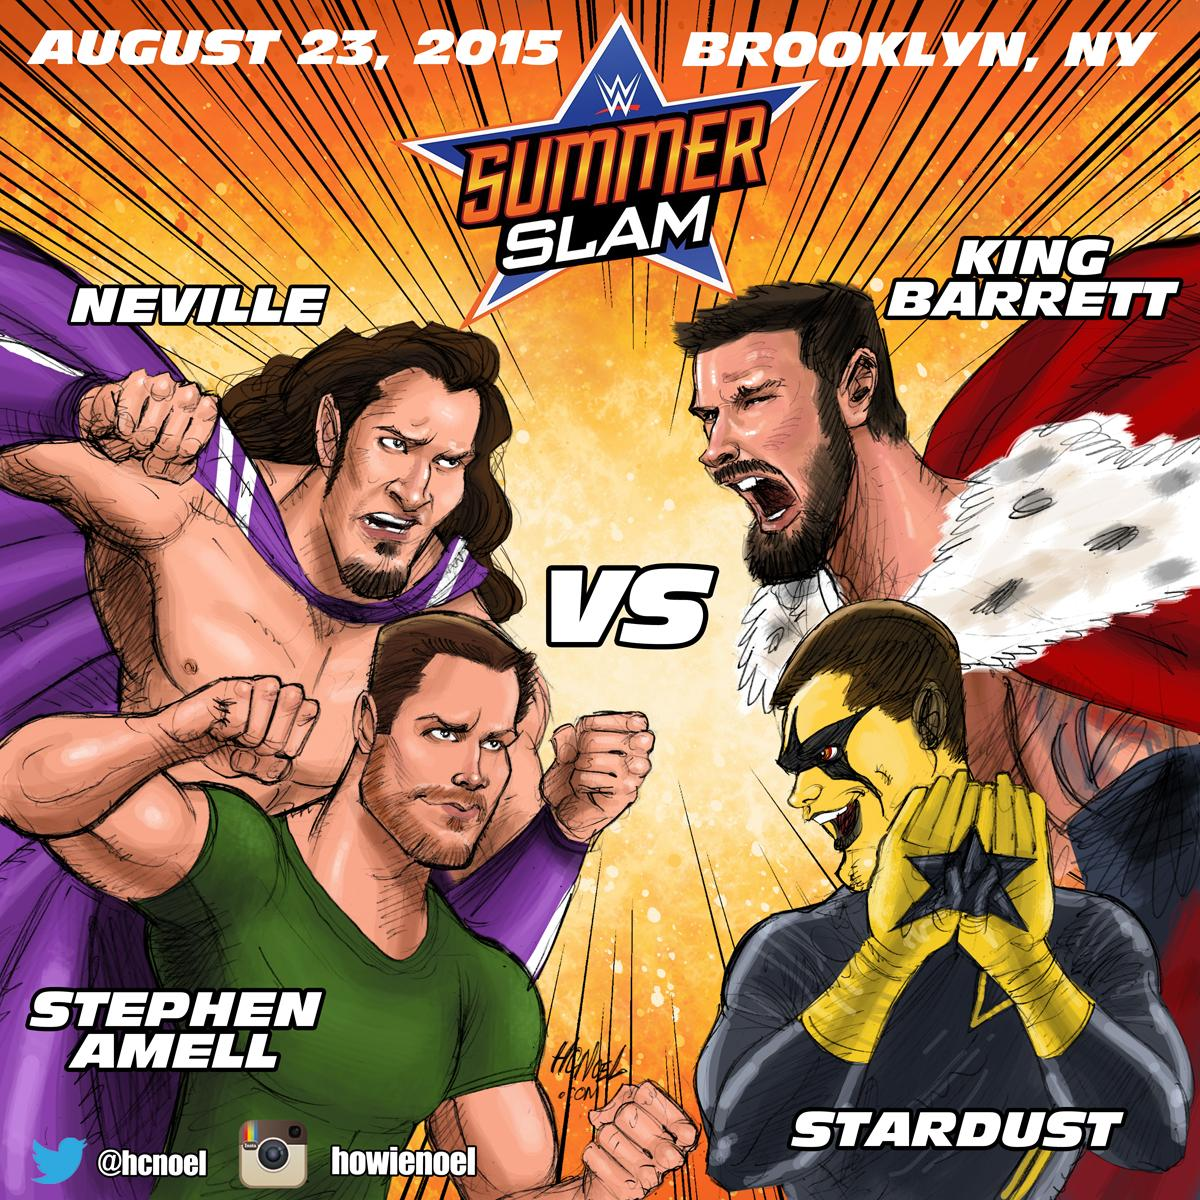 @amellywood Just drew this art for your match at #Summerslam @WWENeville @StardustWWE @WadeBarrett @WWE http://t.co/6xFjlU2fHk